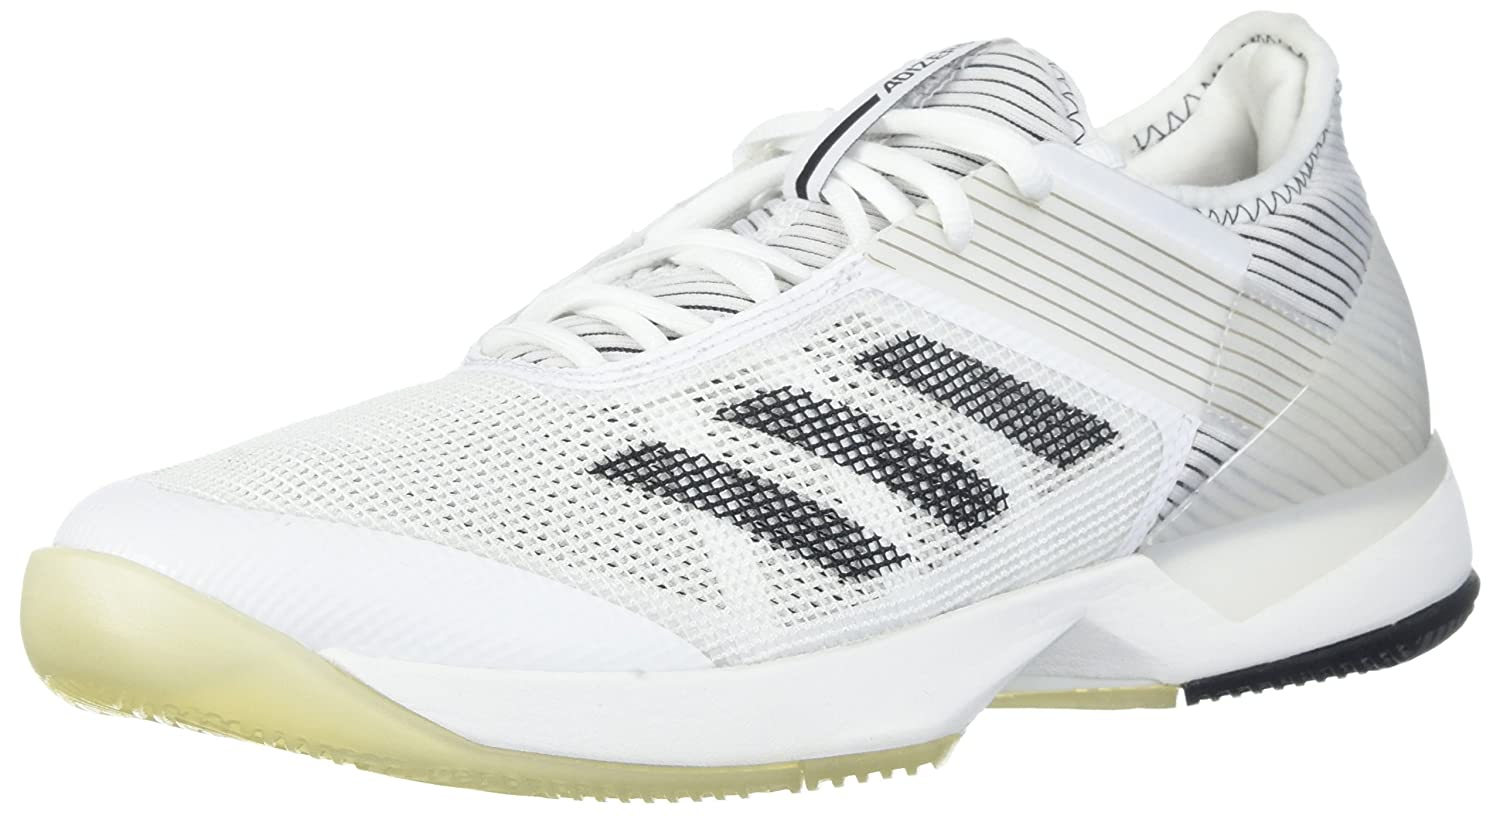 adidas Women's Adizero Ubersonic 3 W Tennis Shoe B07234KWWV 6 B(M) US|White/Core Black/White